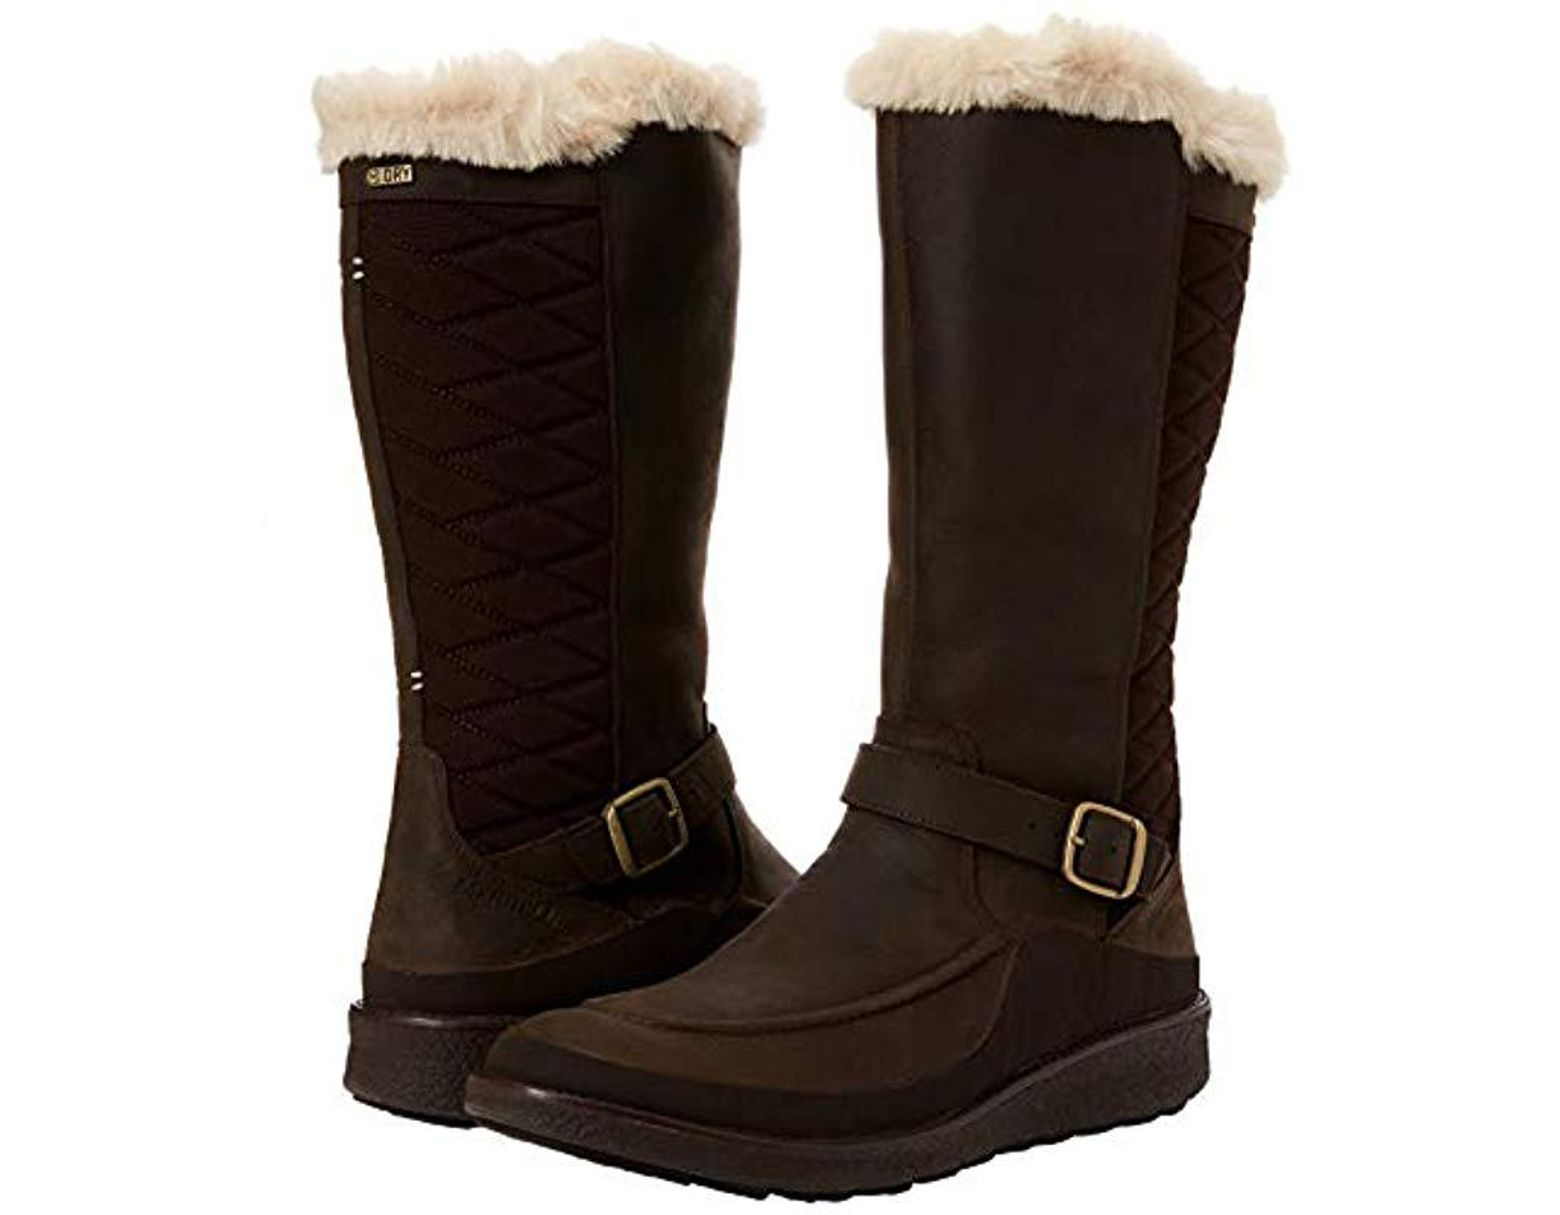 8a4005bf Women's Brown Tremblant Ezra Tall Polar Waterproof High Boots